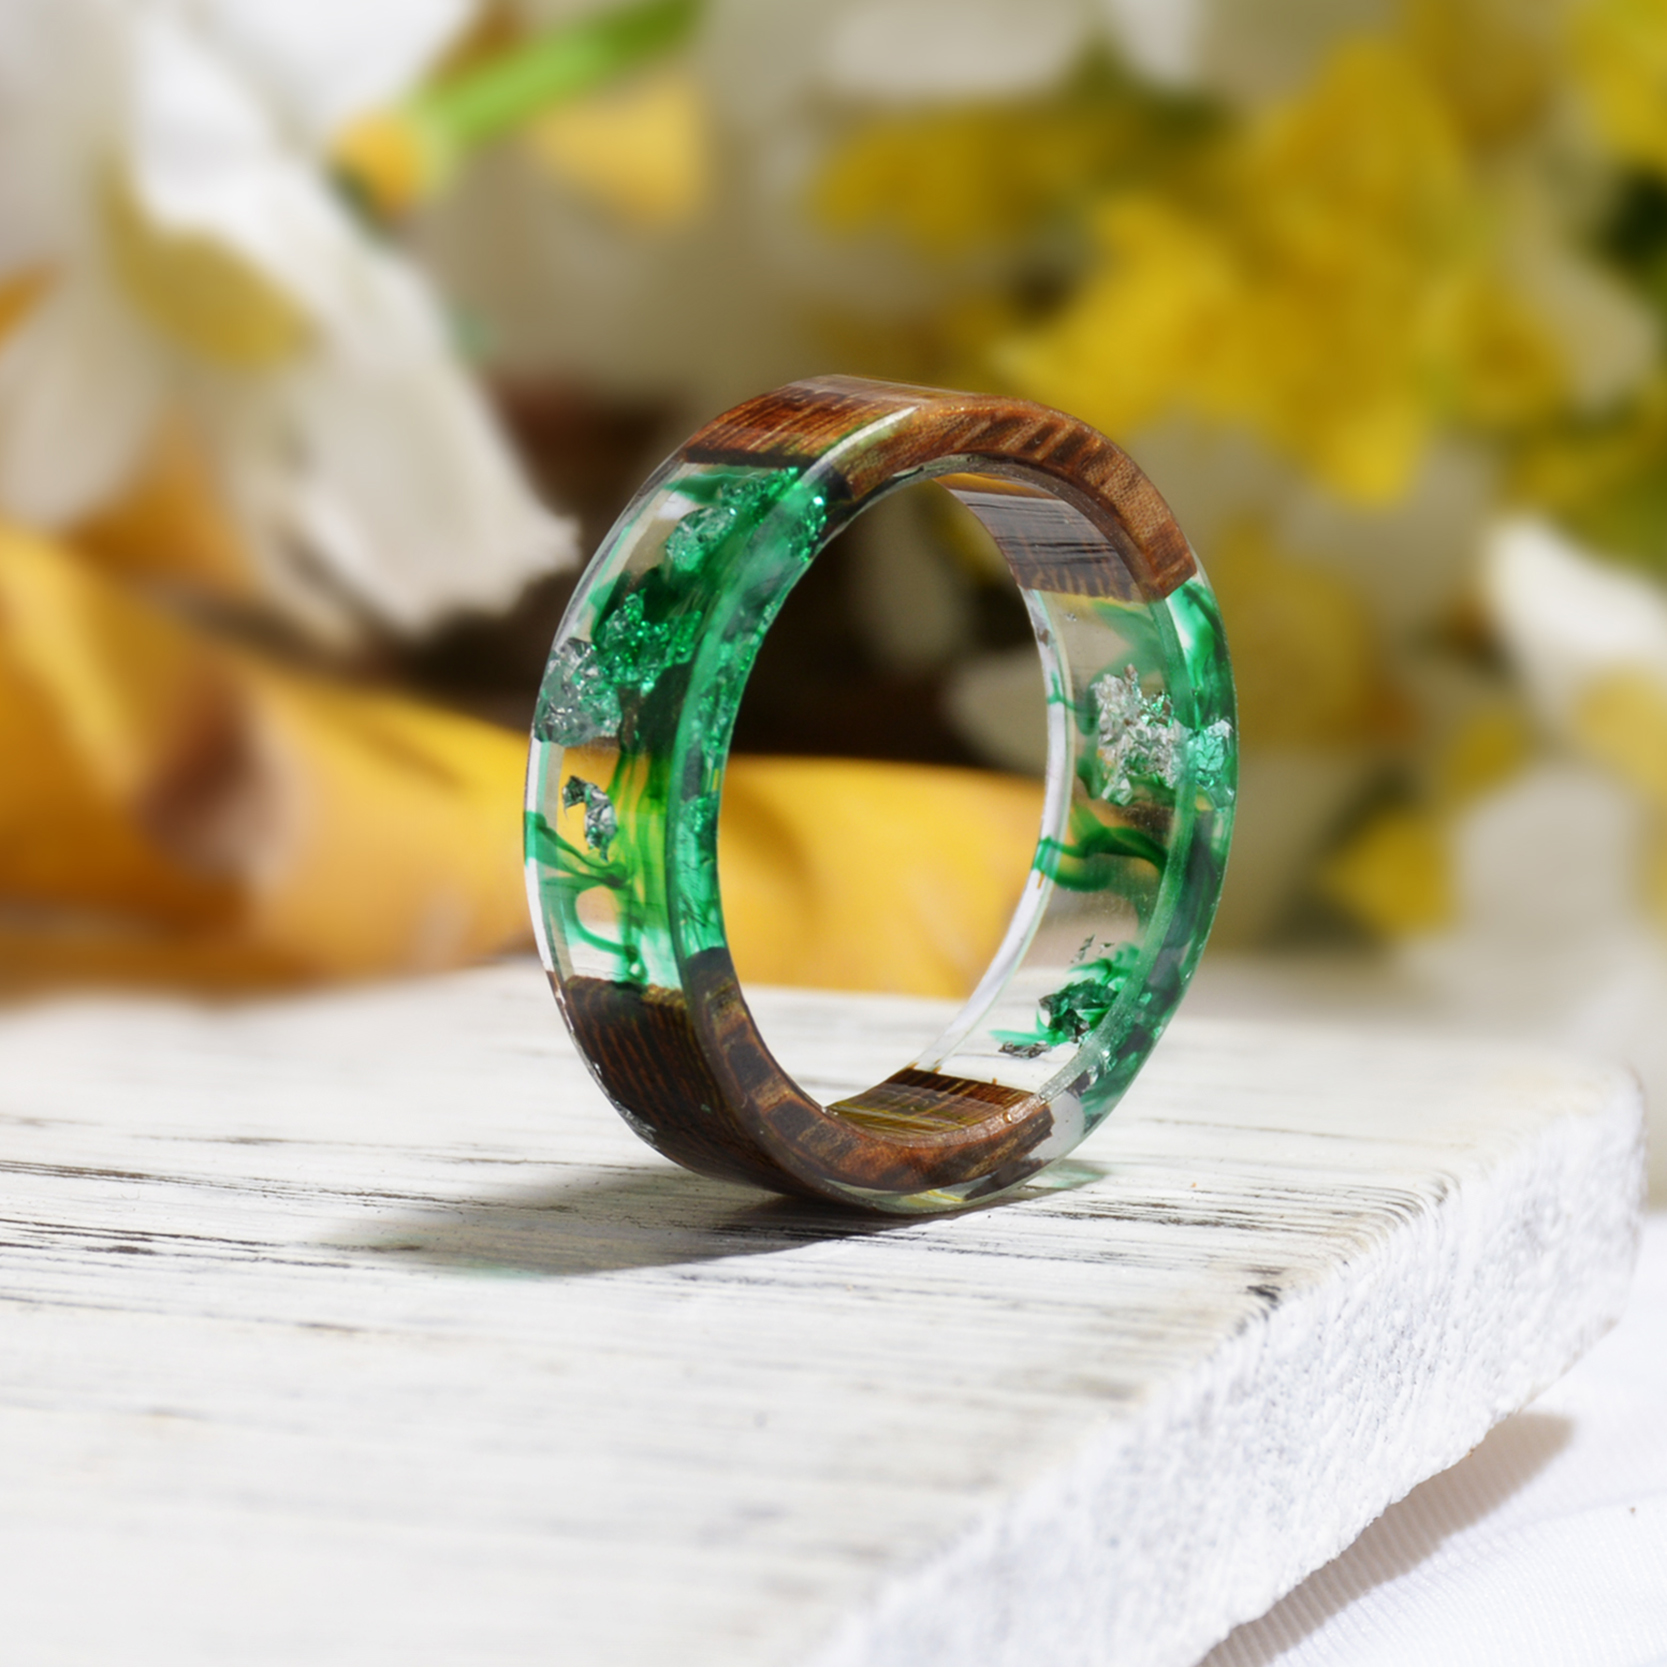 Wood Resin Ring Transparent Epoxy Resin Ring Fashion Handmade Dried Flower Wedding Jewelry Love Ring for Women 2019 New Design 2